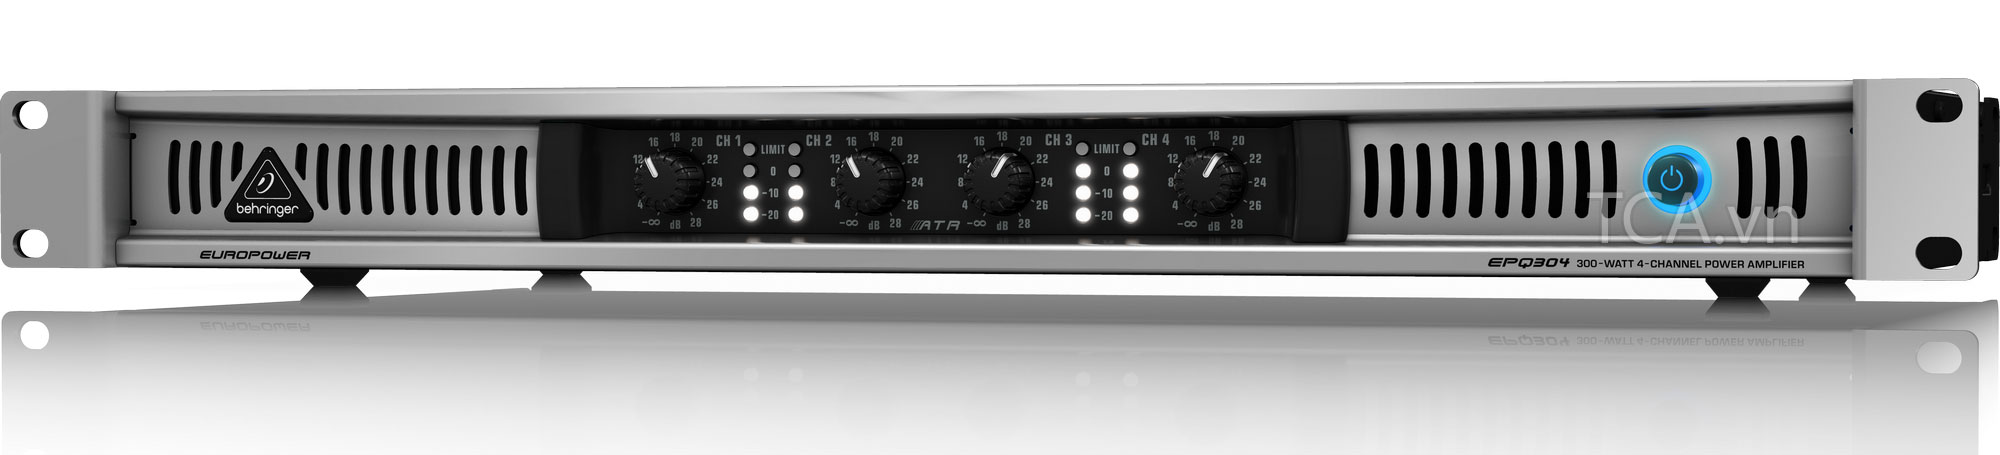 Power Amplifier BEHRINGER EUROPOWER EPQ304